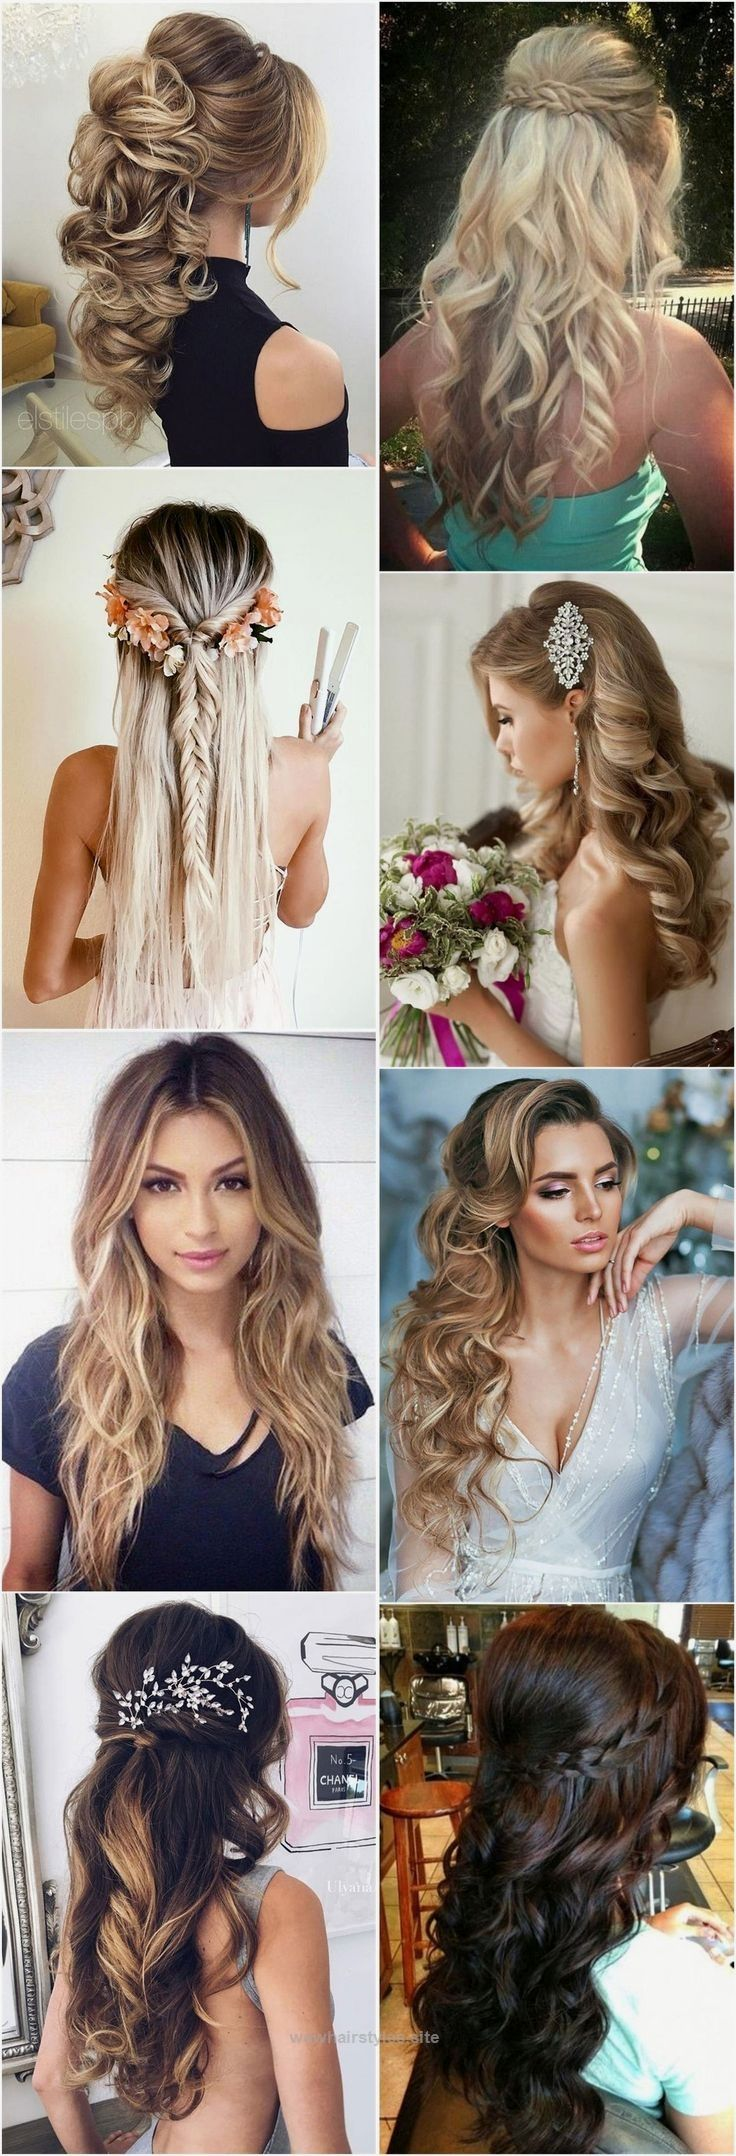 wedding hairstyles » 18 creative and unique wedding hairstyles for